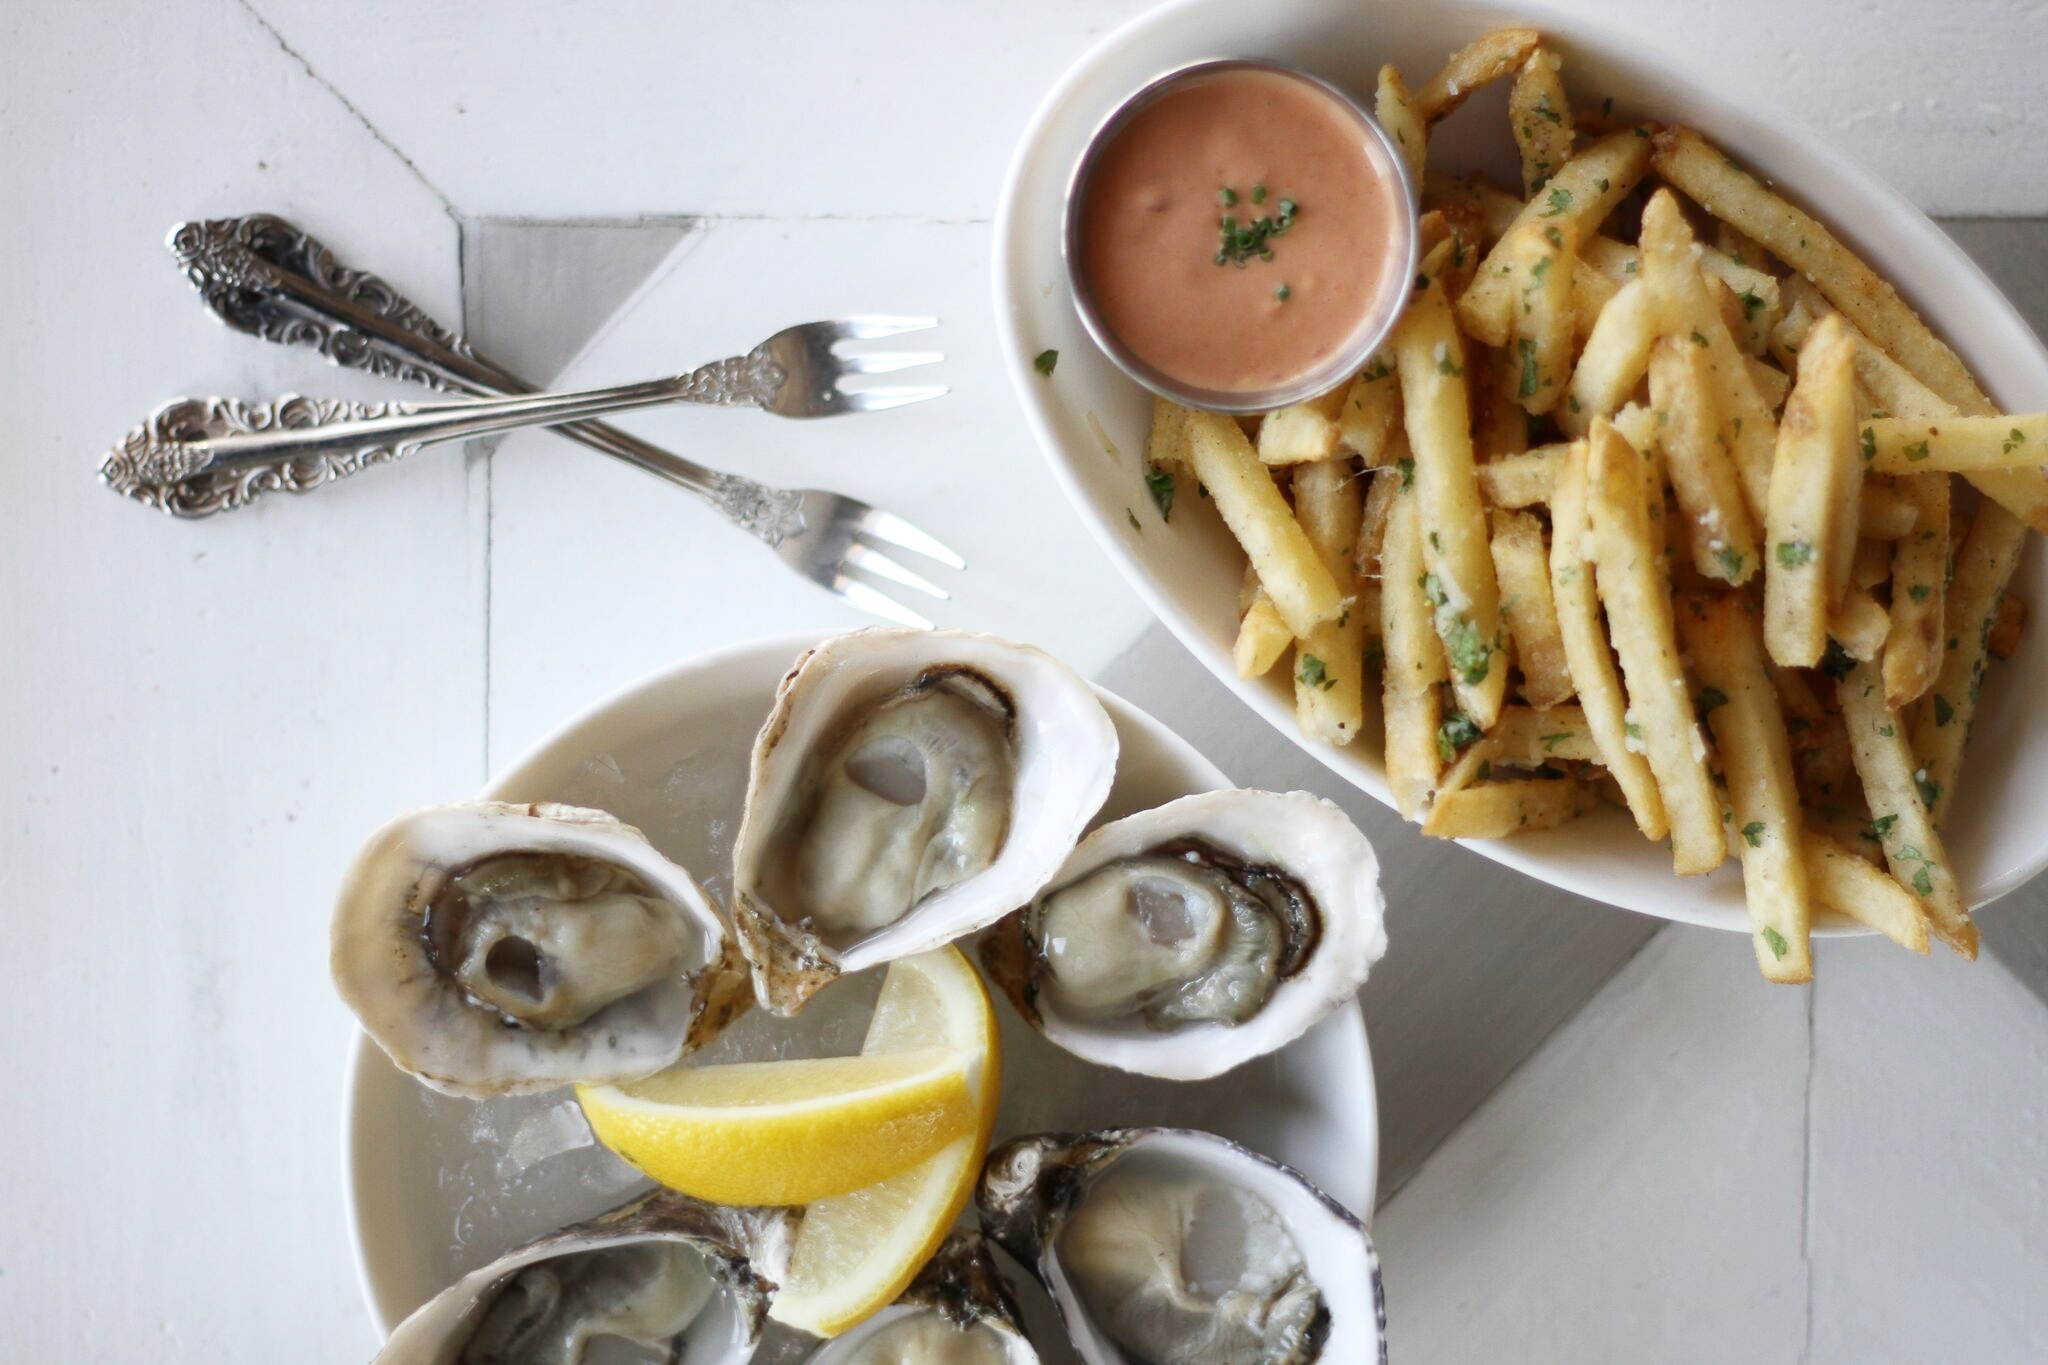 Oysters and Fries, an ideal start to a weekend meal at Shuck Oyster Bar